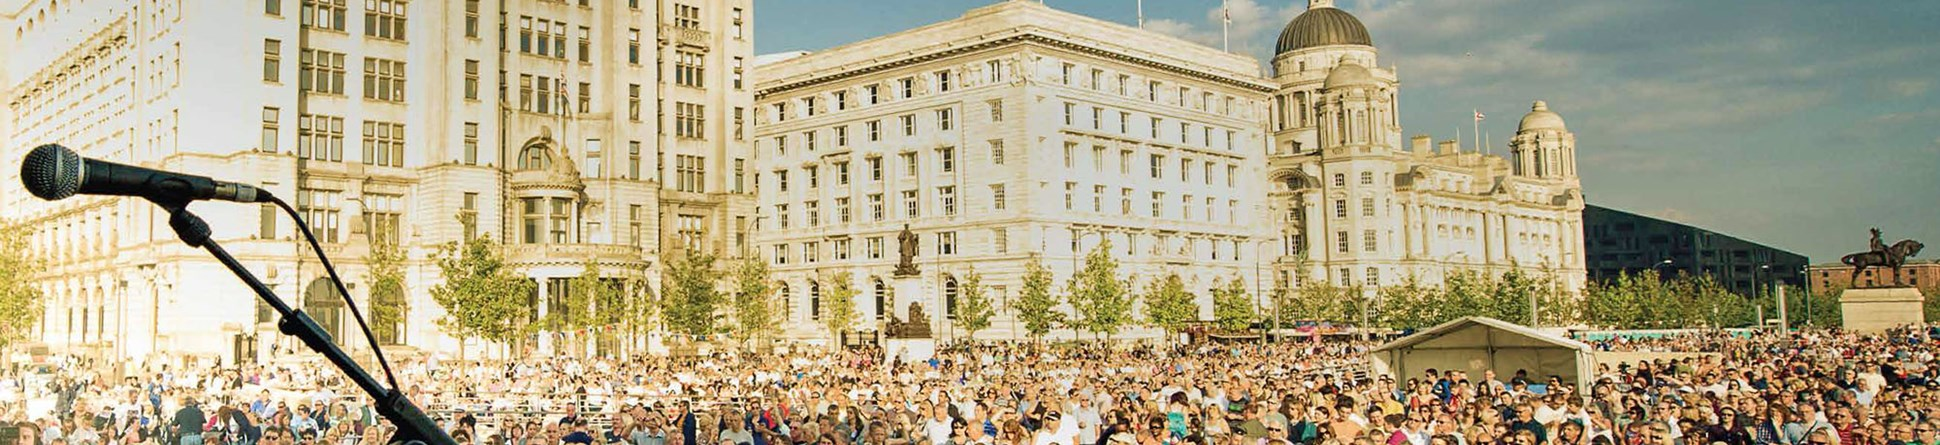 People attending open air concert in front the the Liver Building